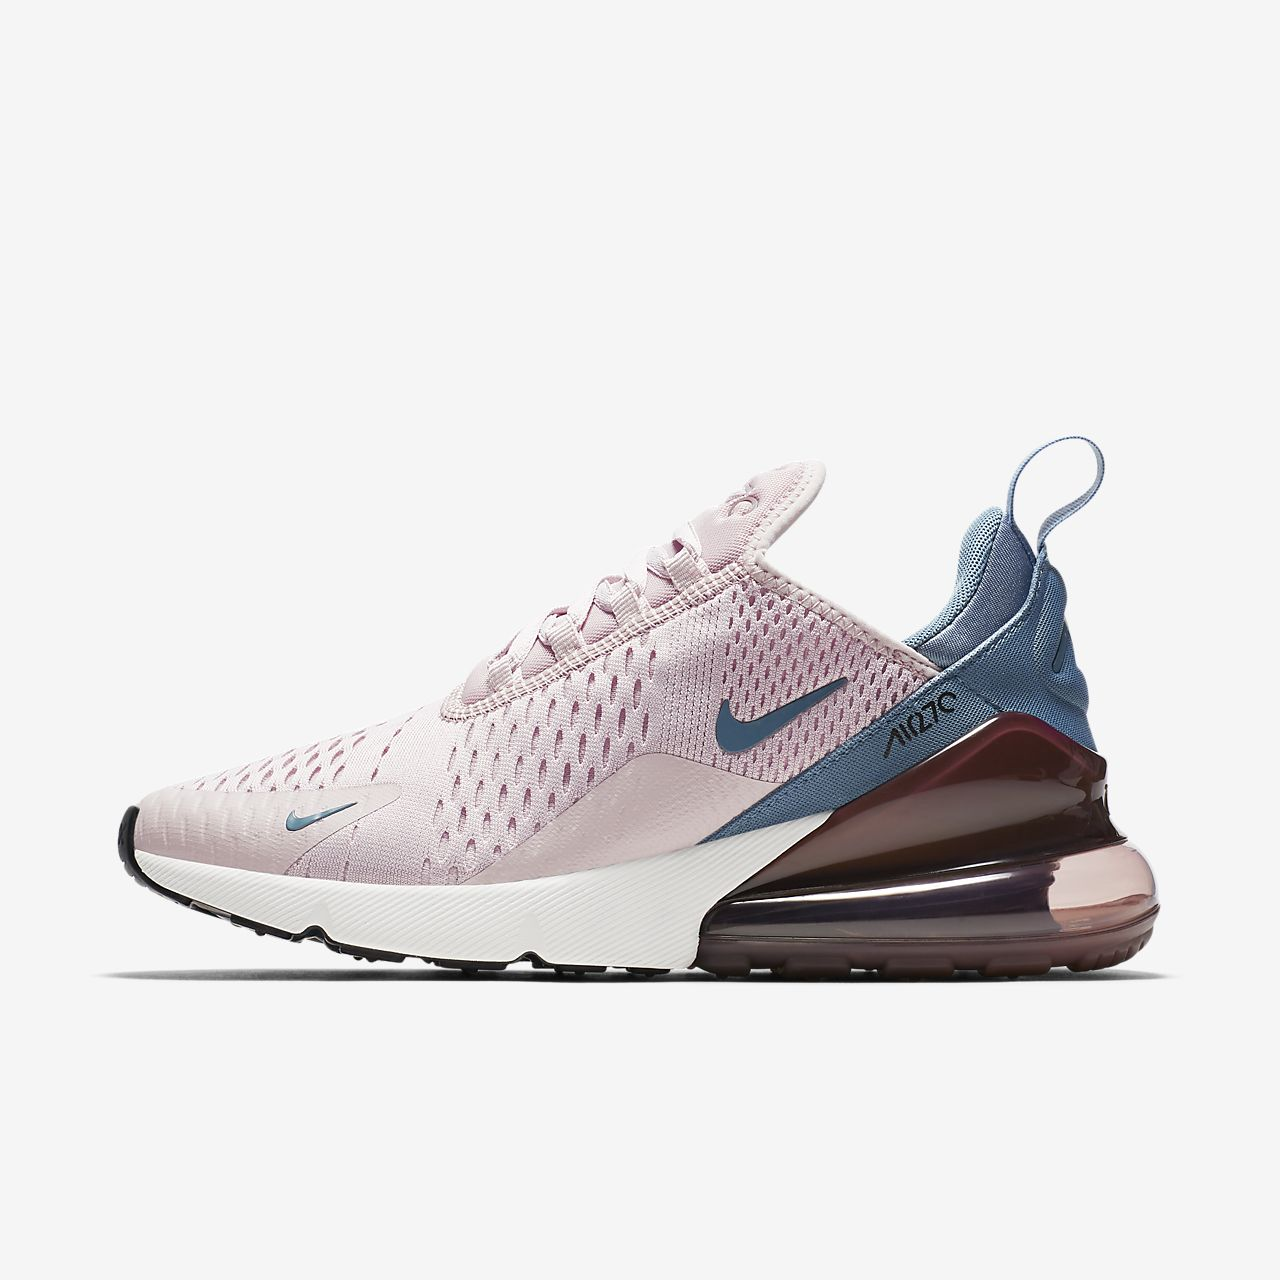 3e057040a9a Nike Air Max 270 Women s Shoe. Nike.com